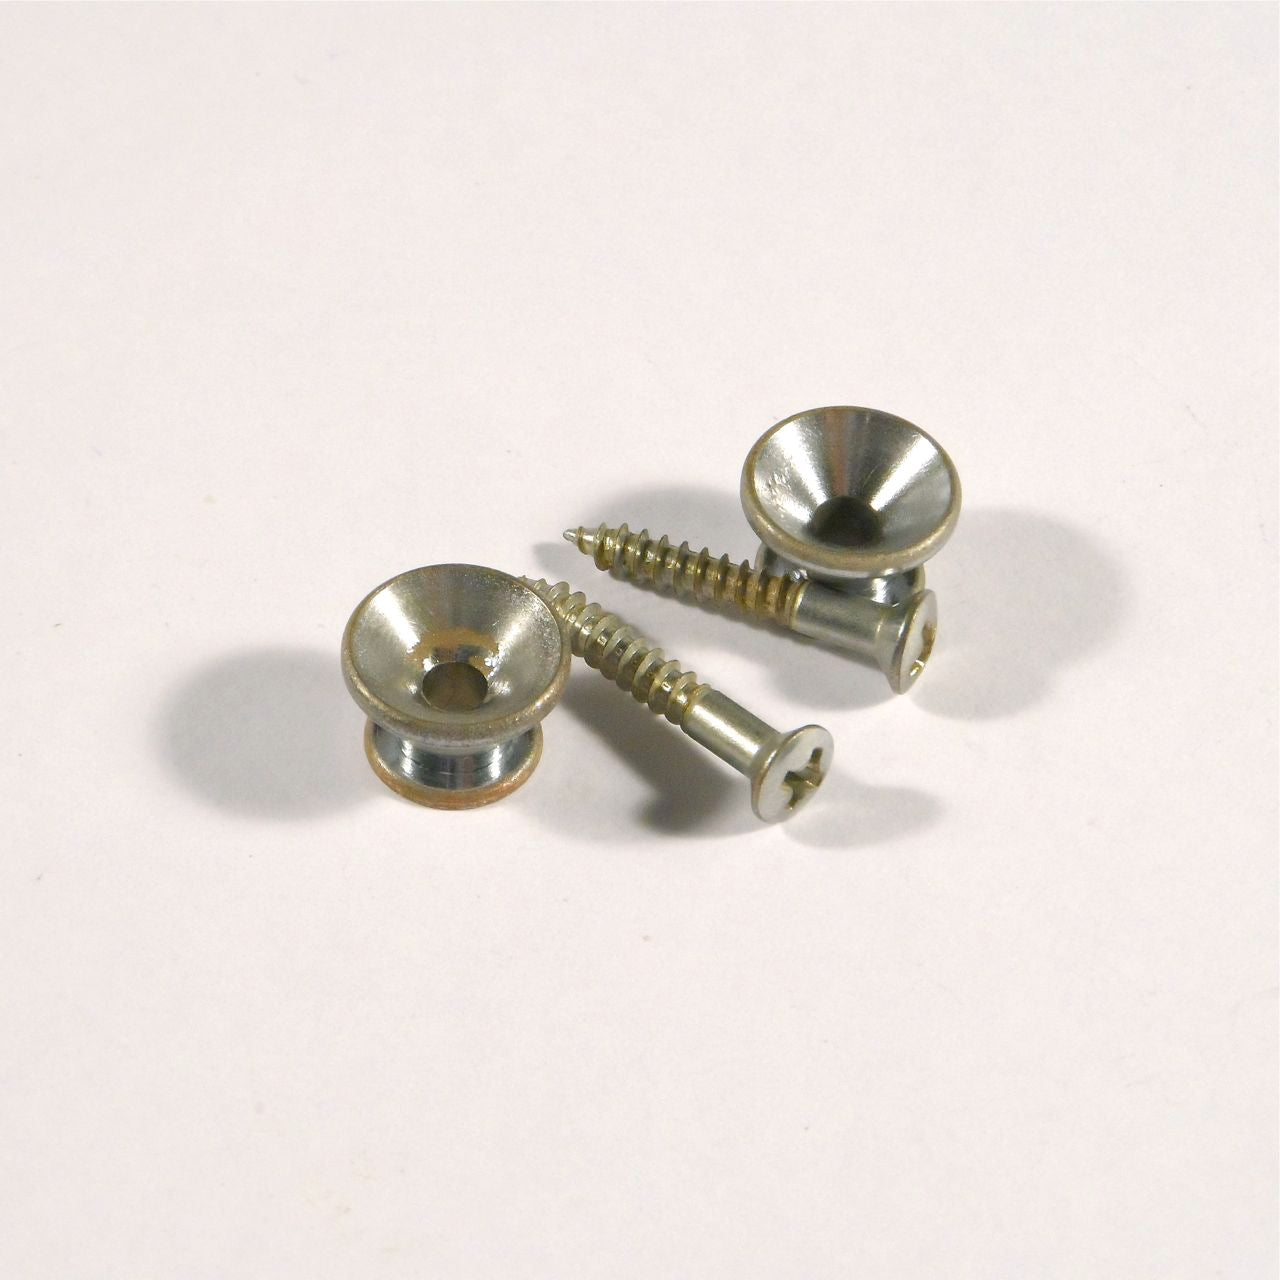 Gotoh strap buttons, set of 2, relic finish